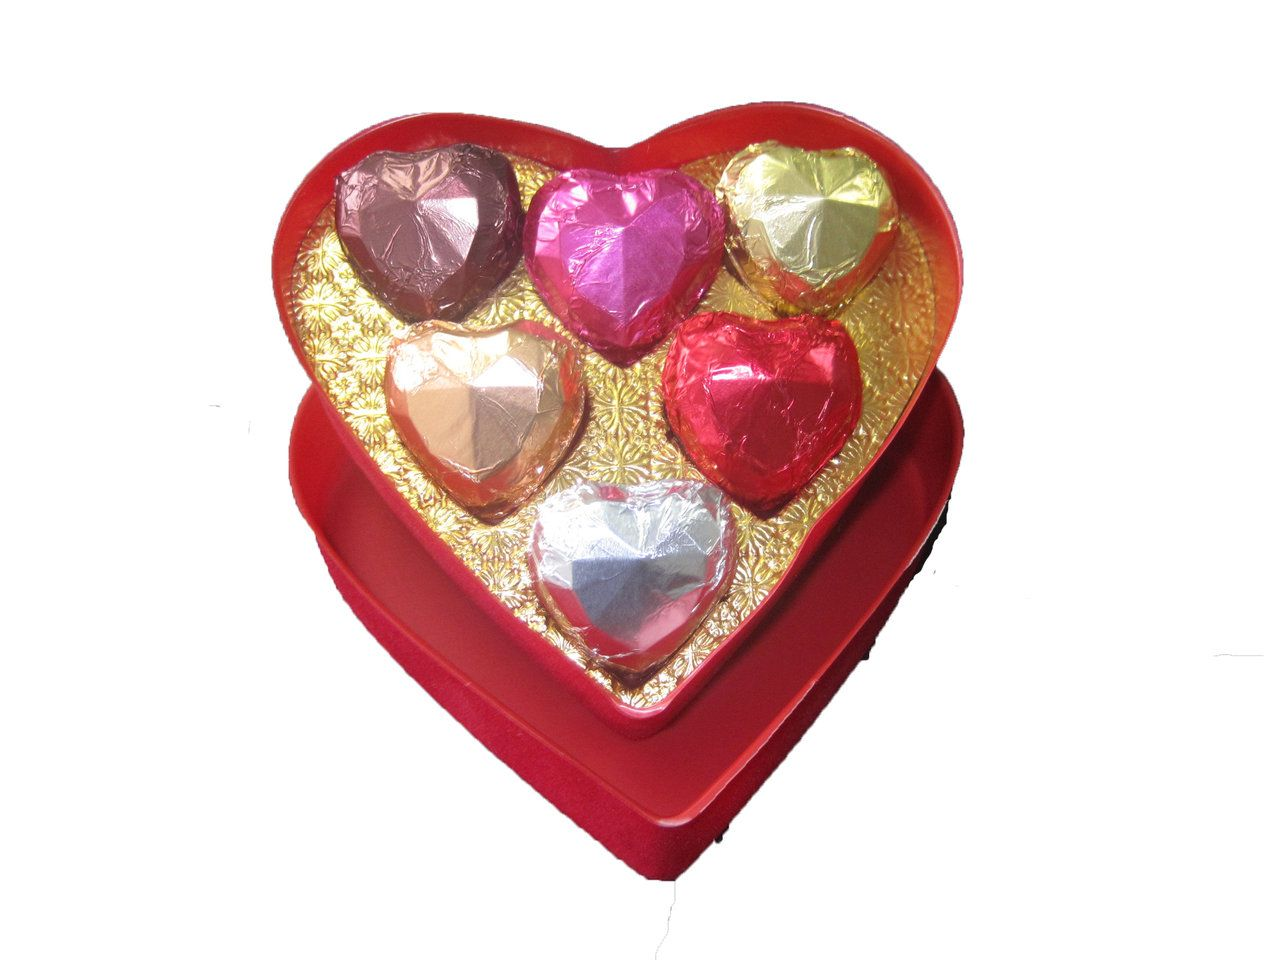 Six Diamante Chocolates In A Red Heart Shaped Box From Chocolate Ocean Heart Shaped Chocolate Heart Shape Box Heart Shapes